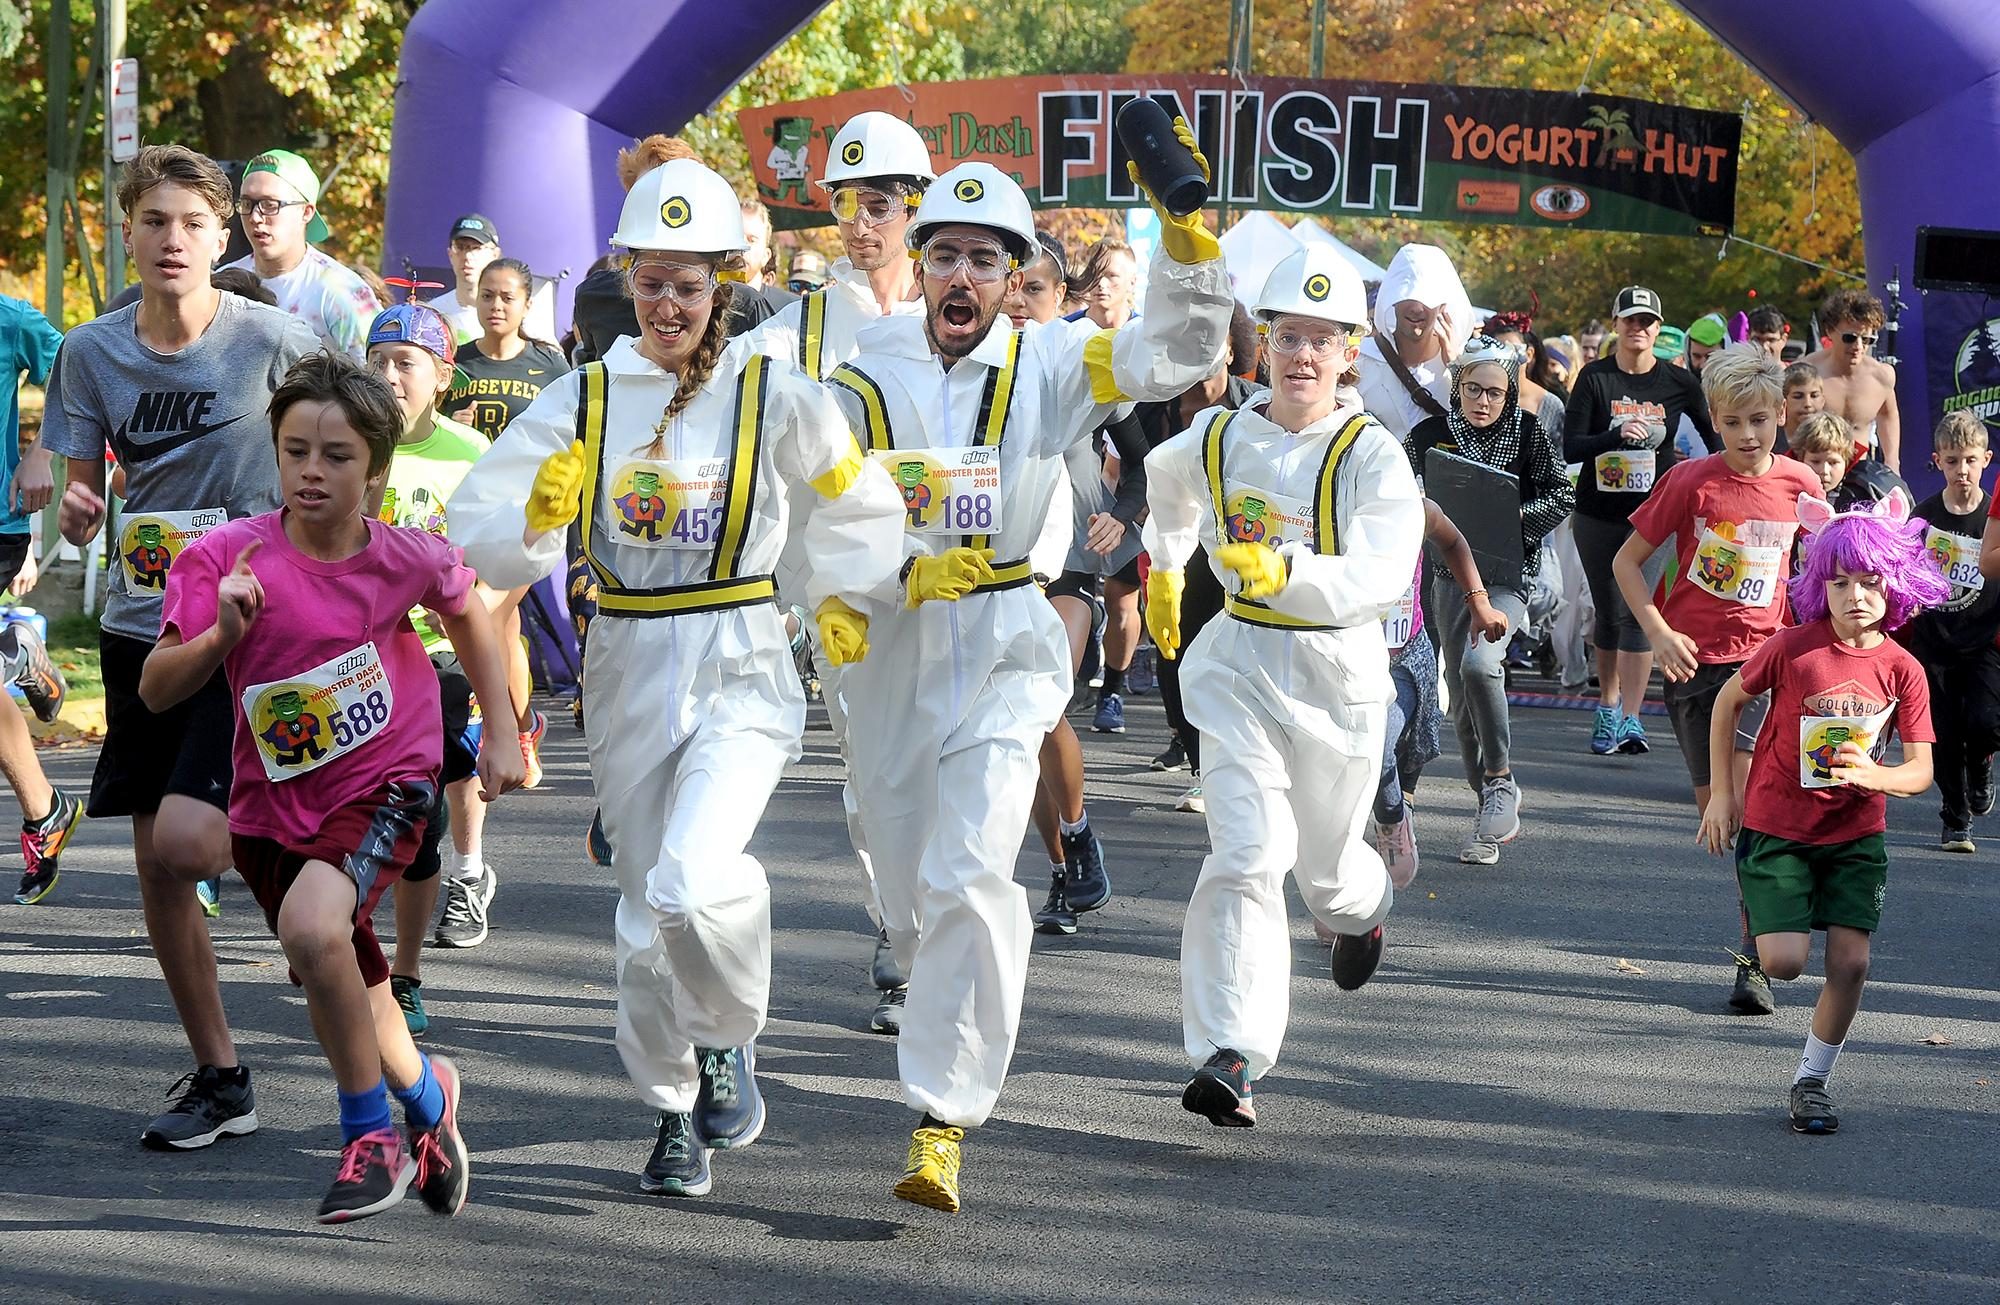 Monster Dash participants (in white), Madi Horning, left, Mike Marlin, Brett Horning and Marnie Kinnaird dress as the Beastie Boys in an intergalactic video for the 5k and 10k run Saturday in Lithia Park. Photo by Denise Baratta